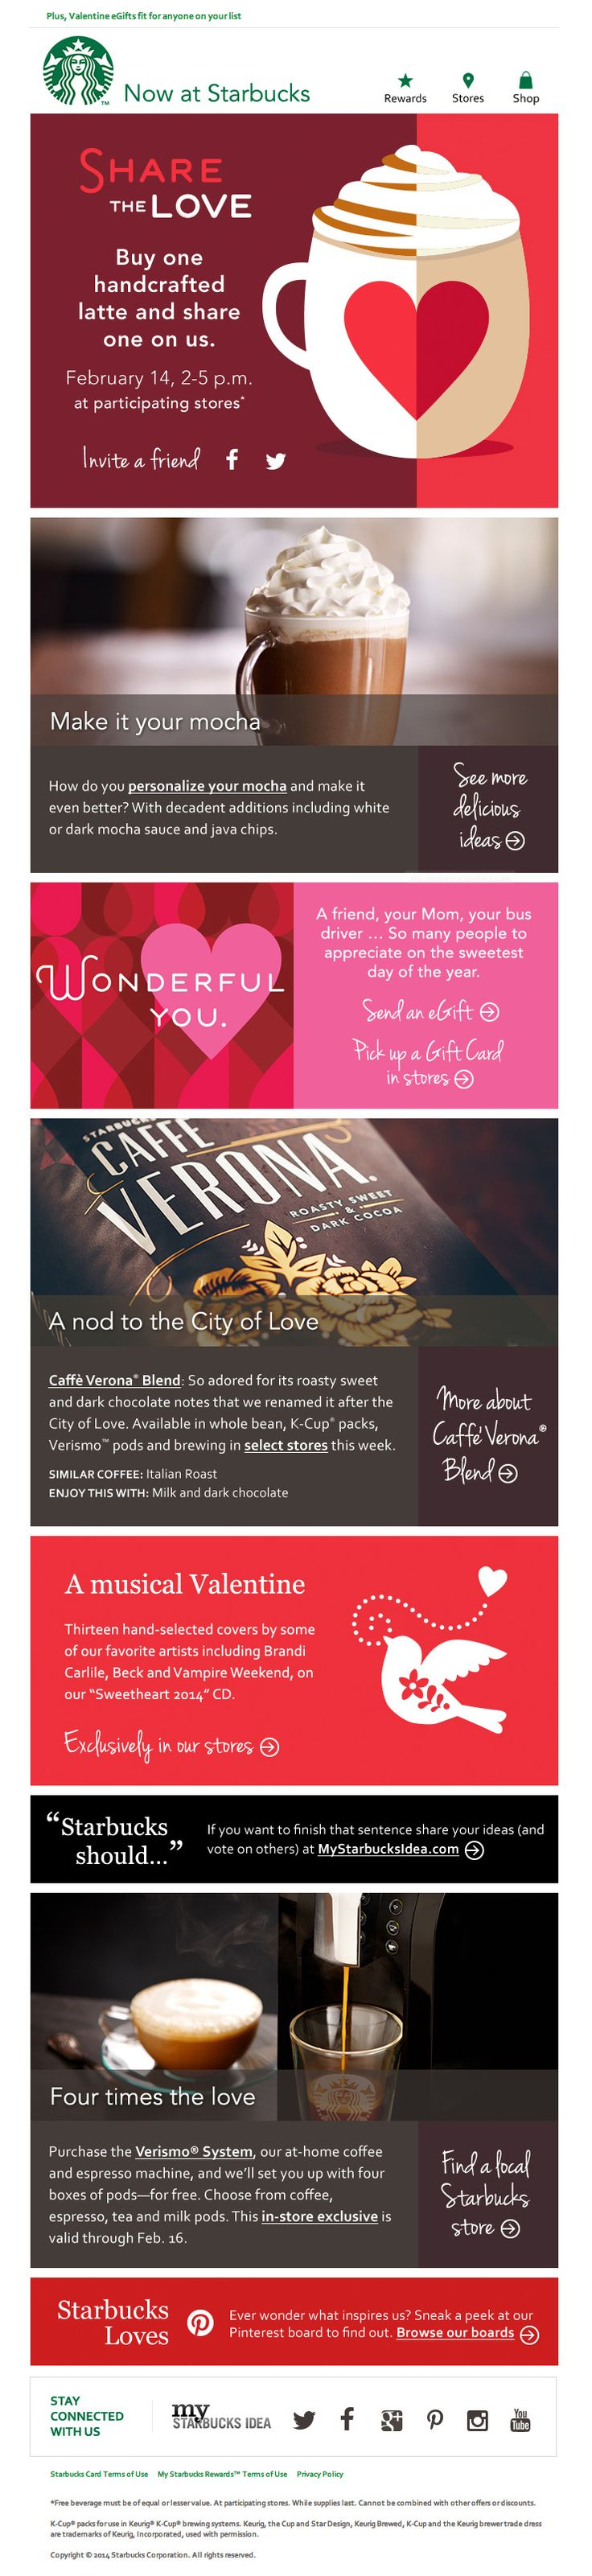 HTML Email Gallery | Email Design Inspiration